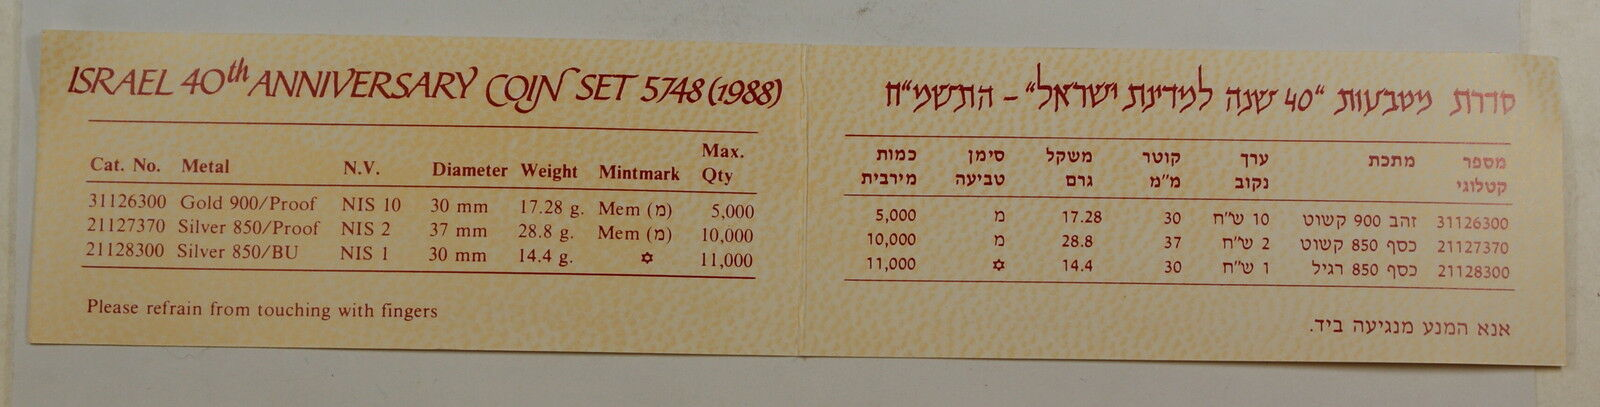 1988 Israel 3 Coin Proof/BU Set, Silver & Gold, 40th Anniversary of Independence